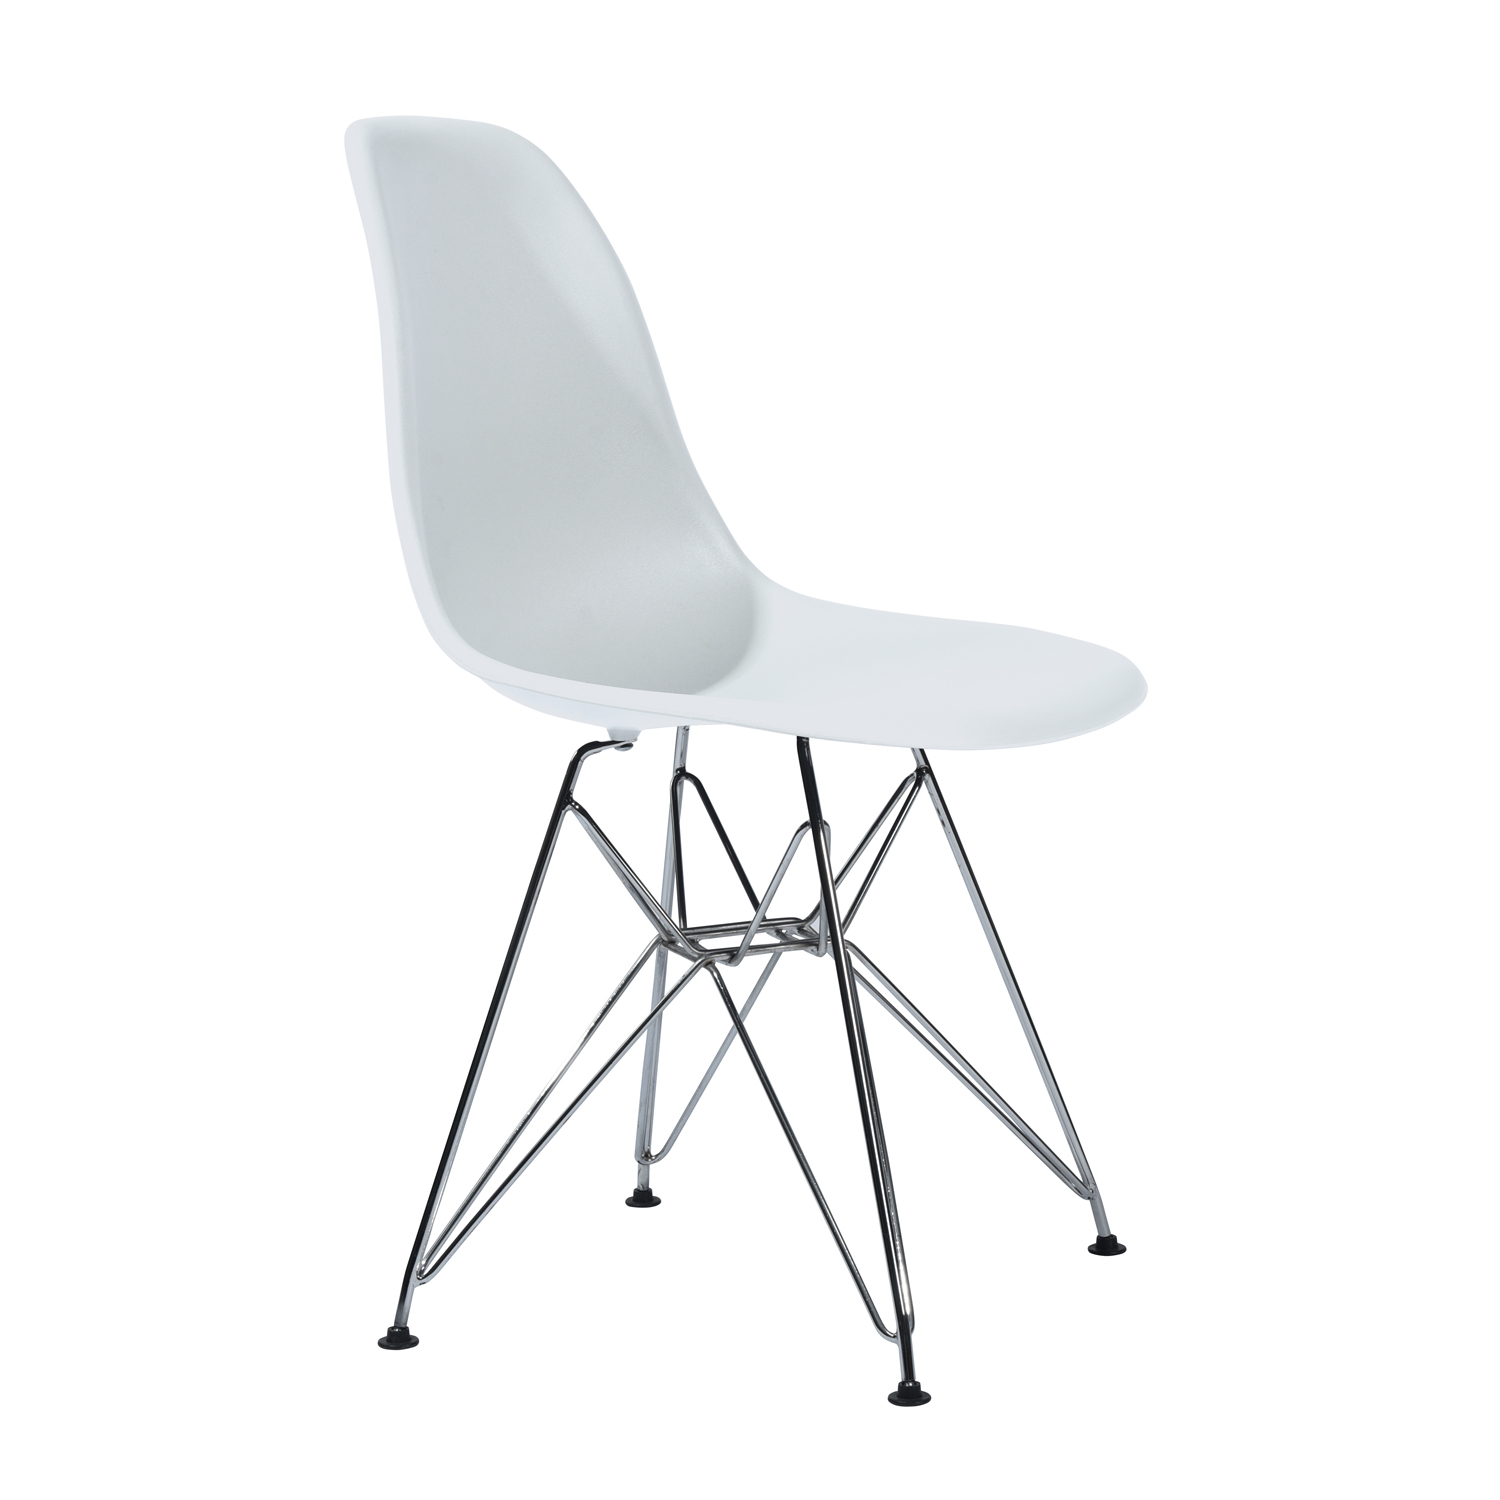 EGGREE Modern Rico Dining Chairs, Kitchen Chair With Metal Feet, Office Room Chair With Solid Frame- White